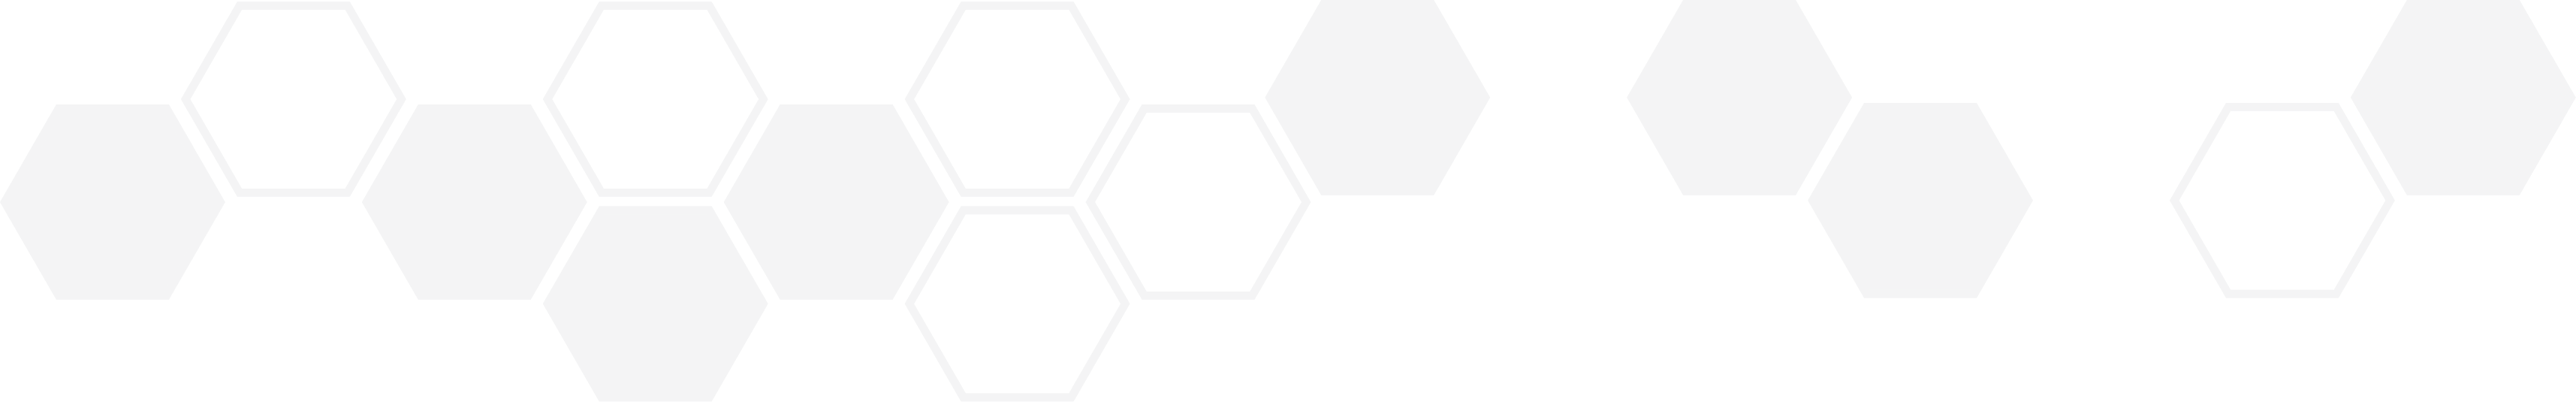 Collection Hexagons